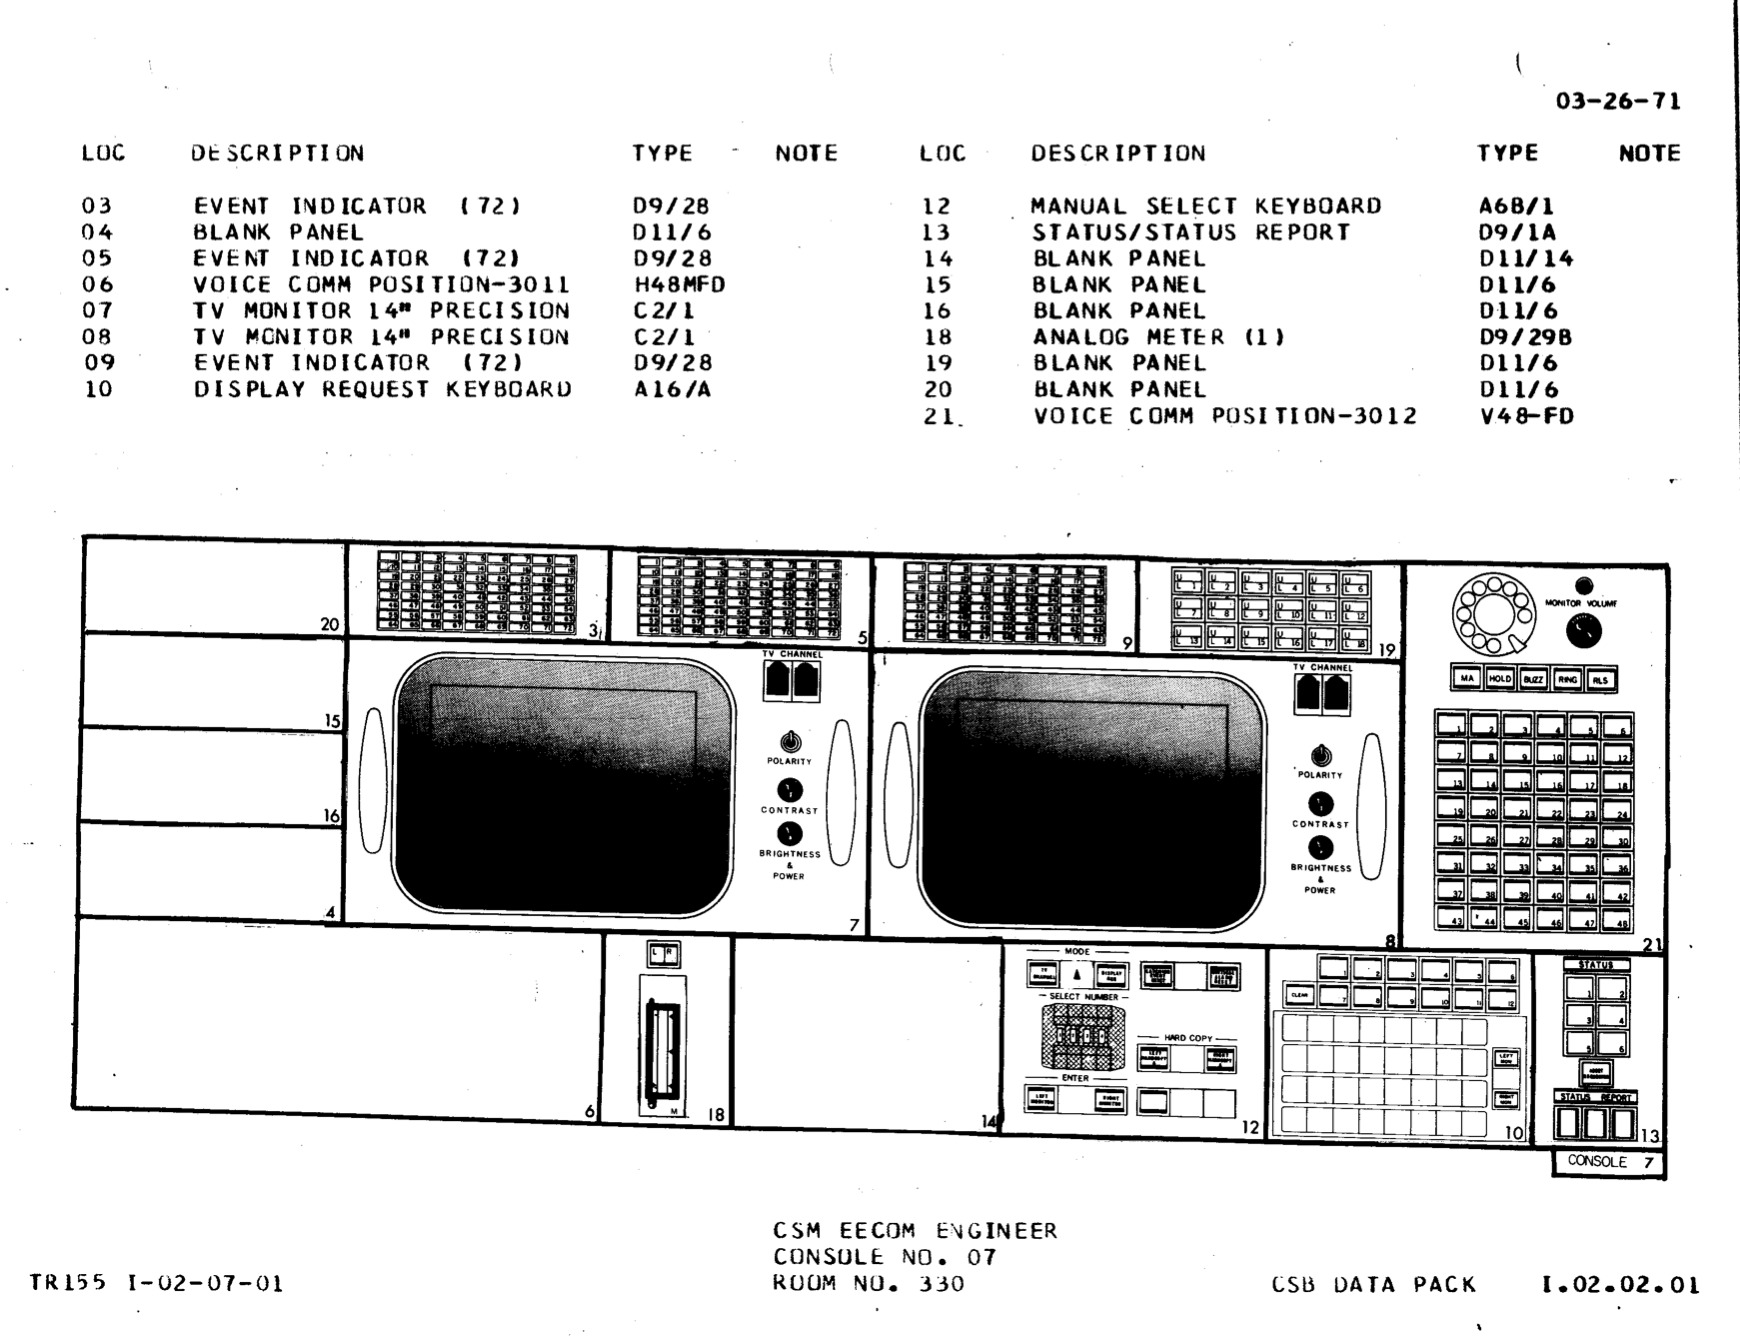 EECOM console diagram, Apollo configuration.